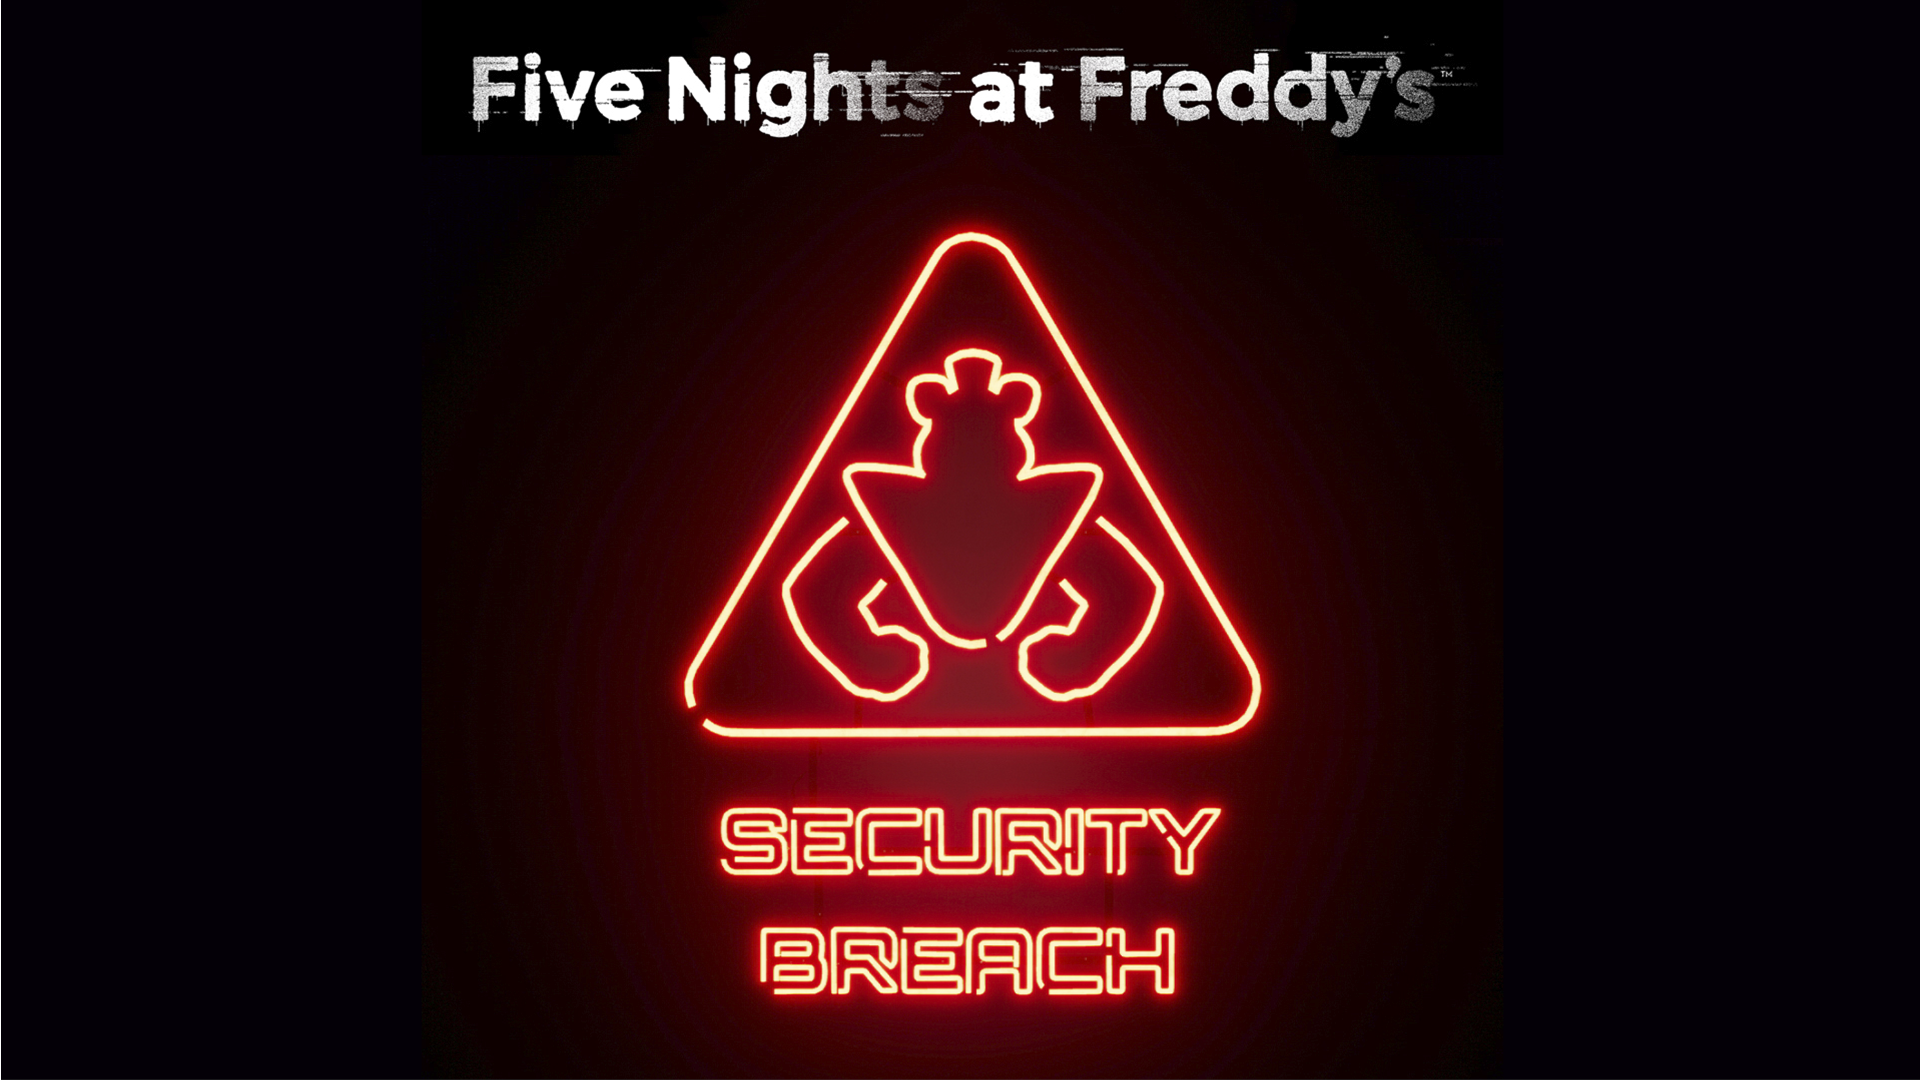 Five Nights At Freddy's: Security Breach - promotional asset